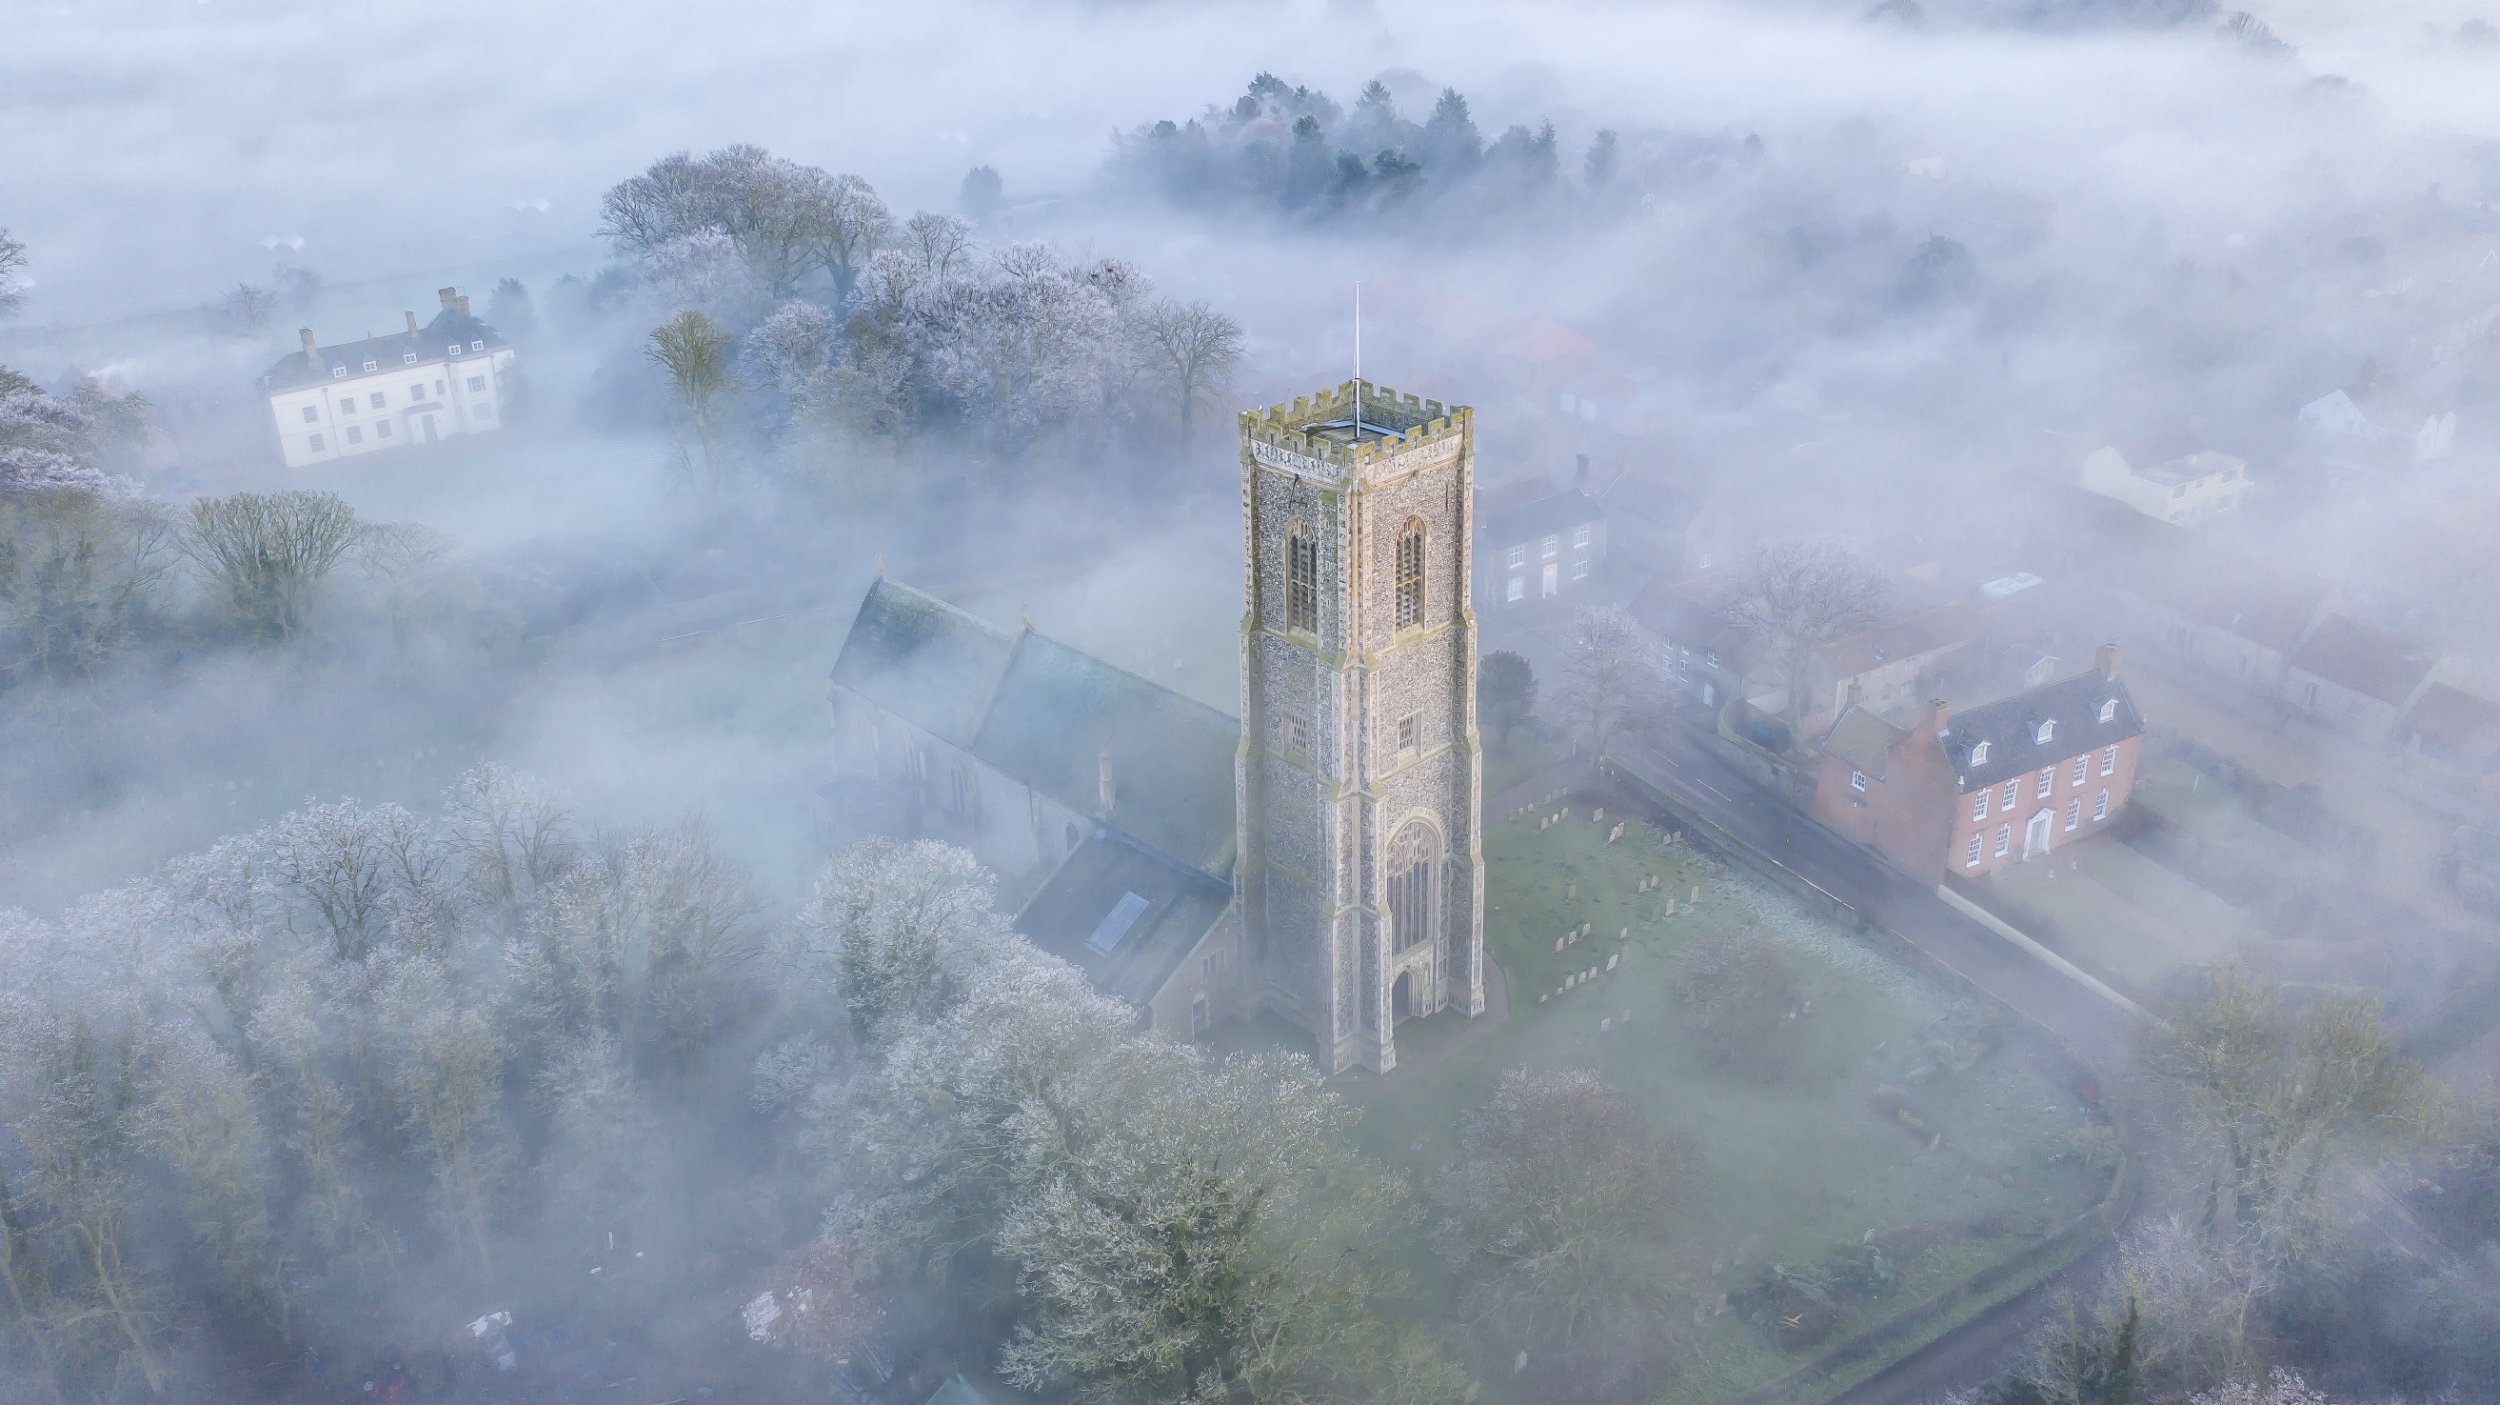 Fog around St James Parish Church in Southrepps, Norfolk which was captured in a drone video. See SWNS copy SWCAfog: This stunning drone footage shows a church spire rising from thick 'radiation fog' covering a village at sunset. The majestic scene was captured in the small community of Southrepps, Norfolk on Friday afternoon. Radiation fog - where cold land cools the air moving over it causing its moisture to condense - can be seen settled in a thick blanket over the houses.